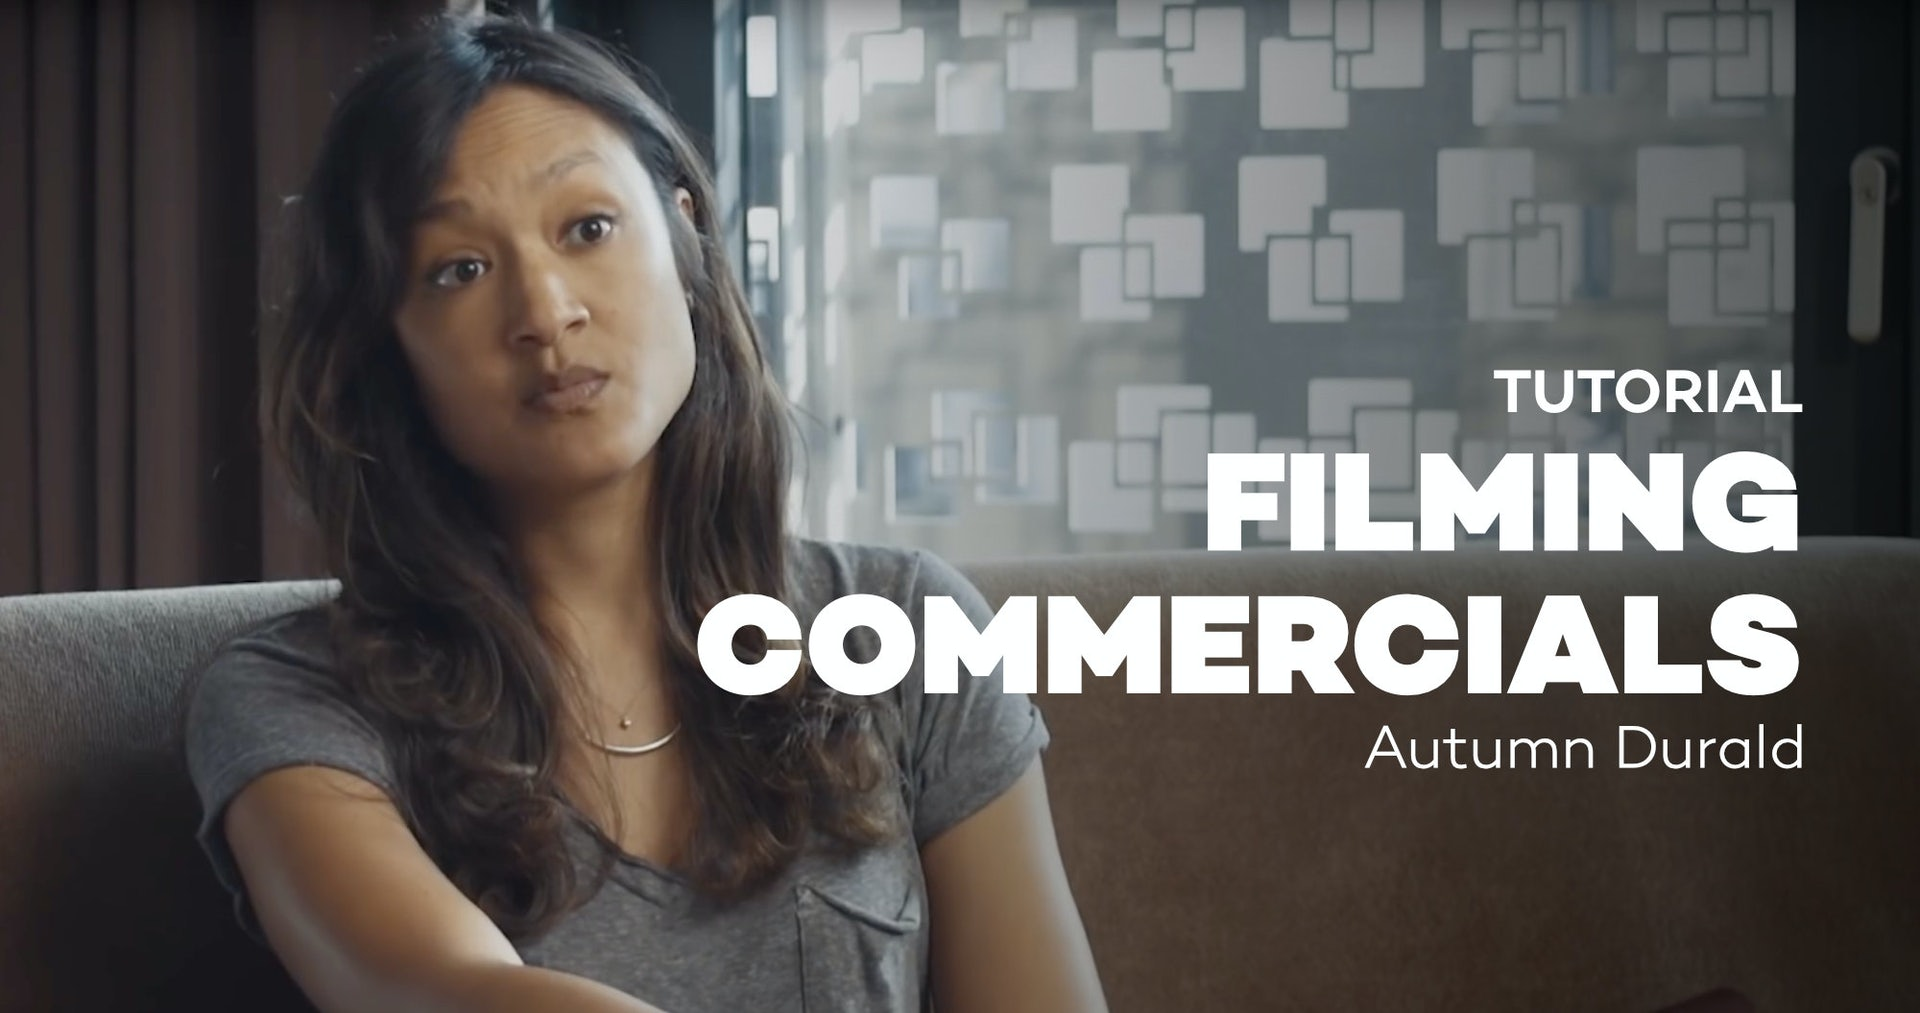 Tutorial: Filming Commercials - Autumn Durald